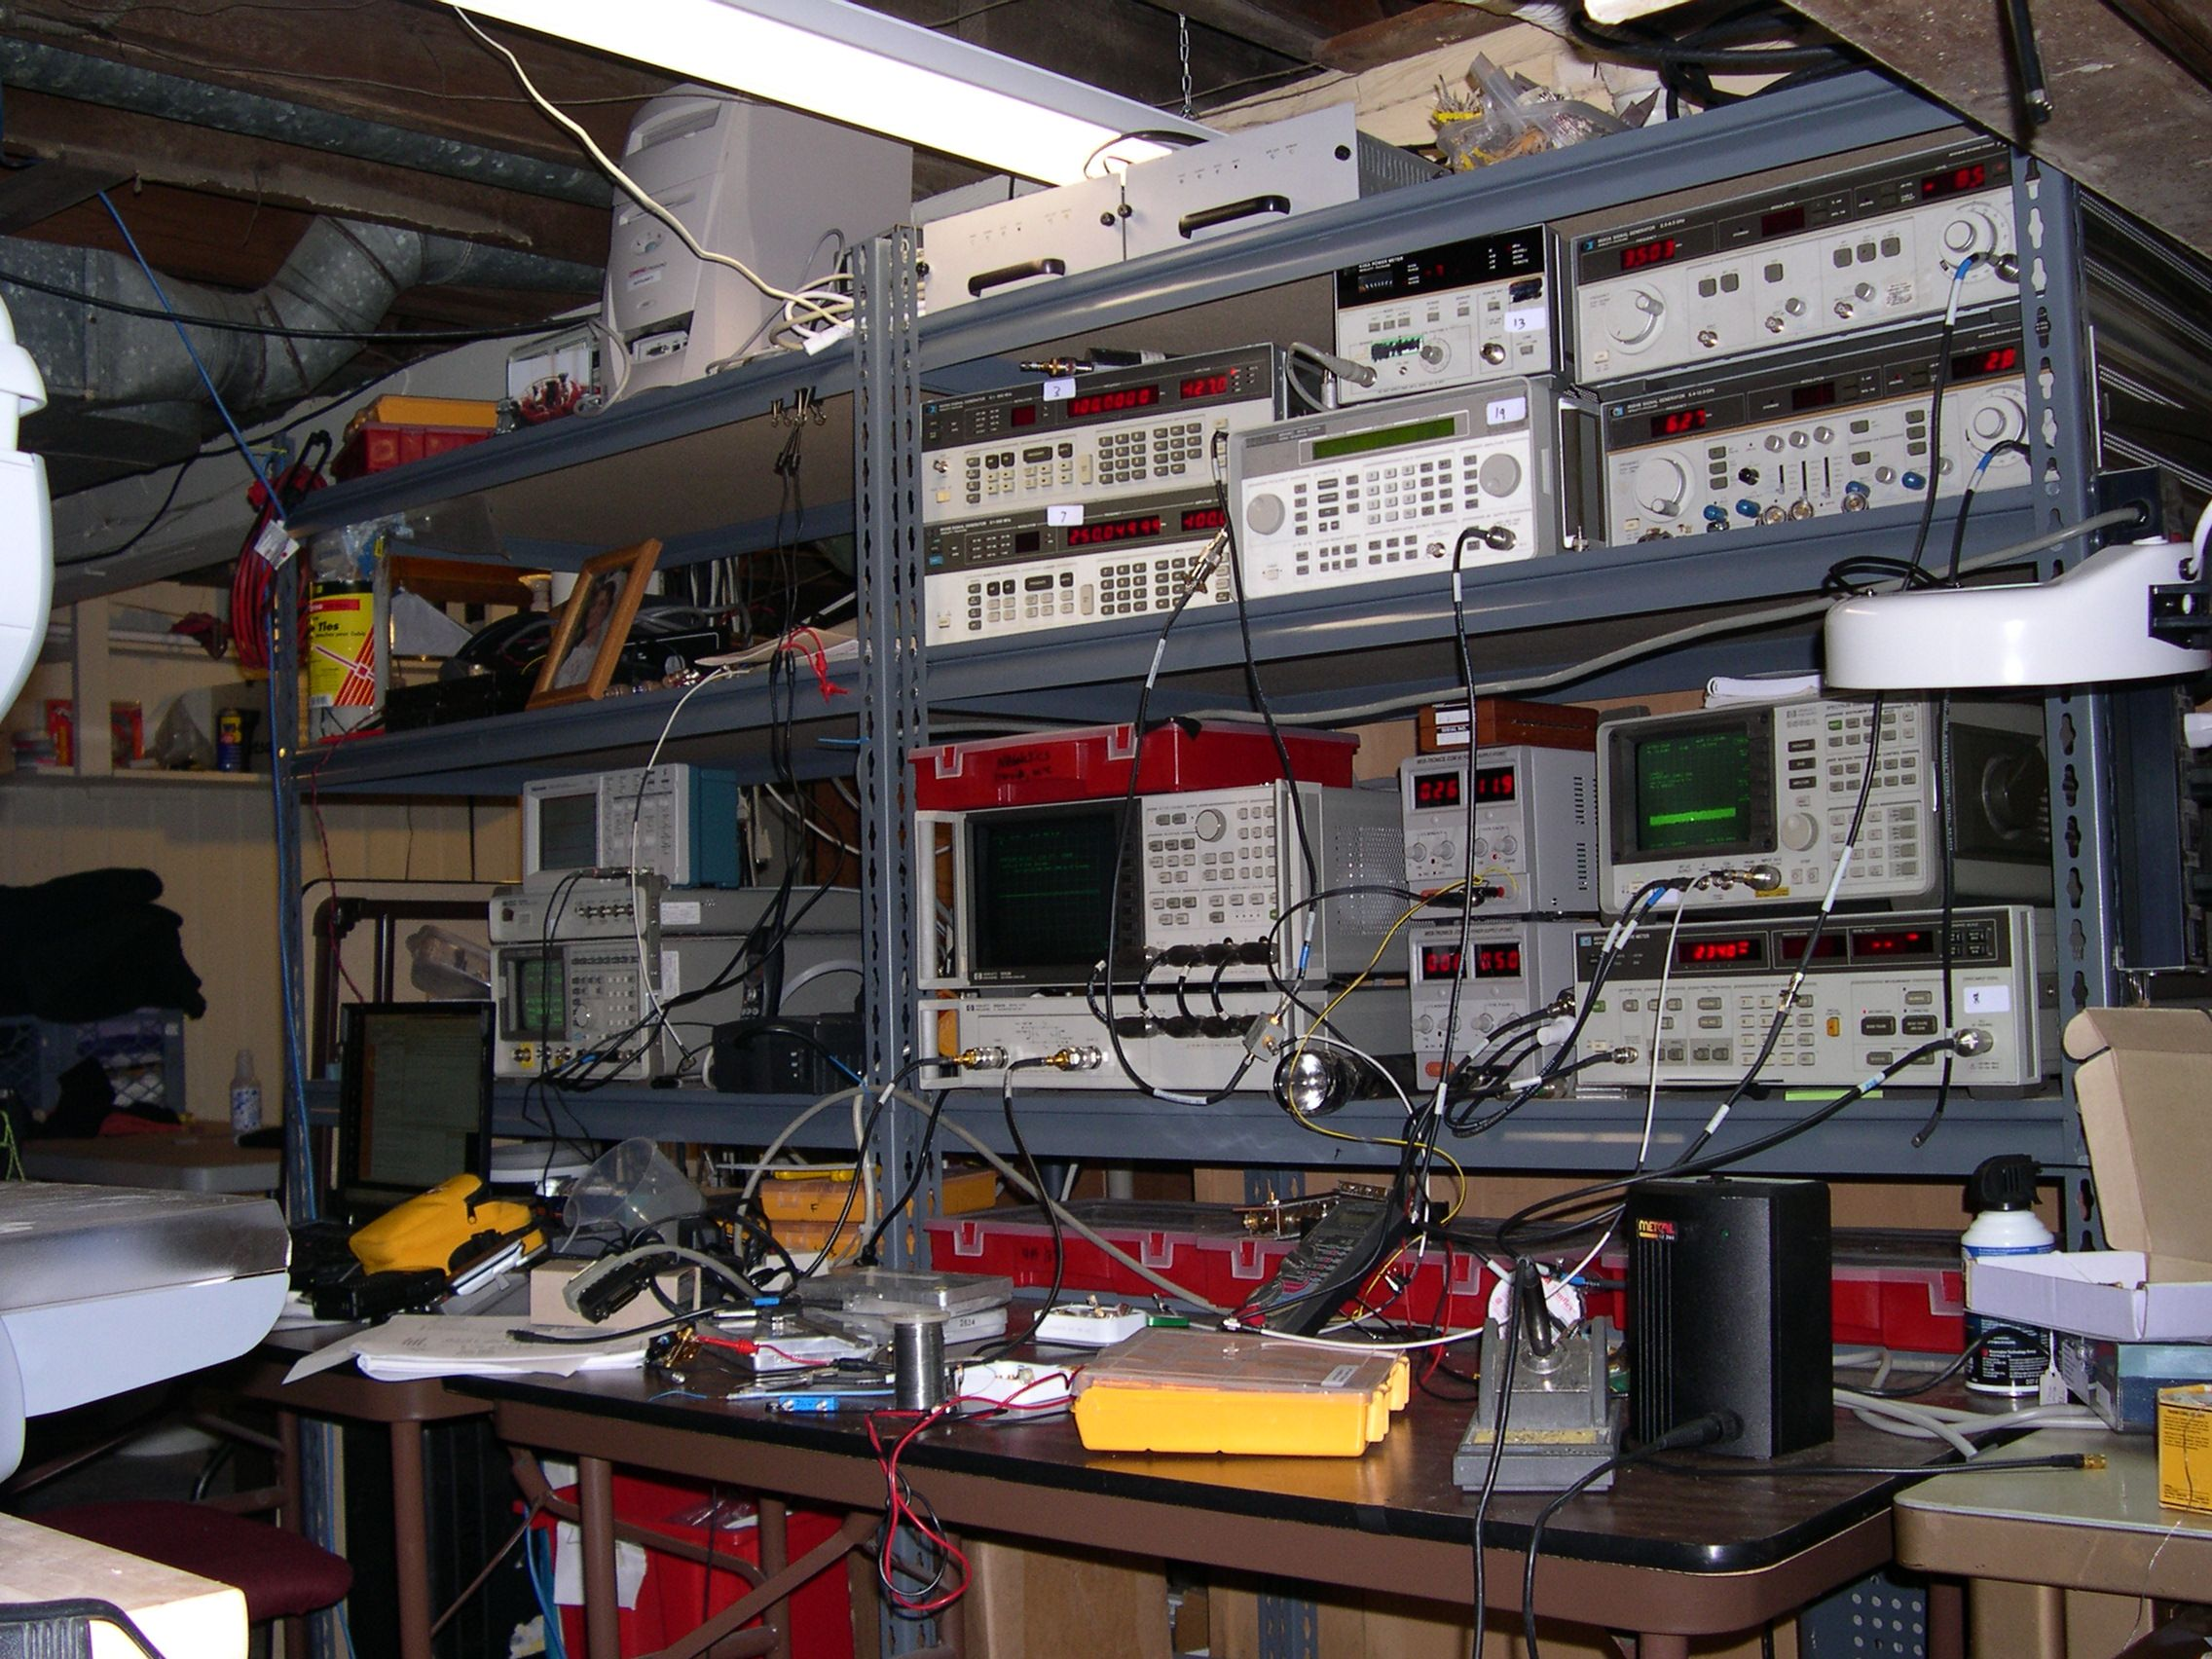 Diy Electronics Repair Workbench : Electronics lab rfdude hardware workbenches